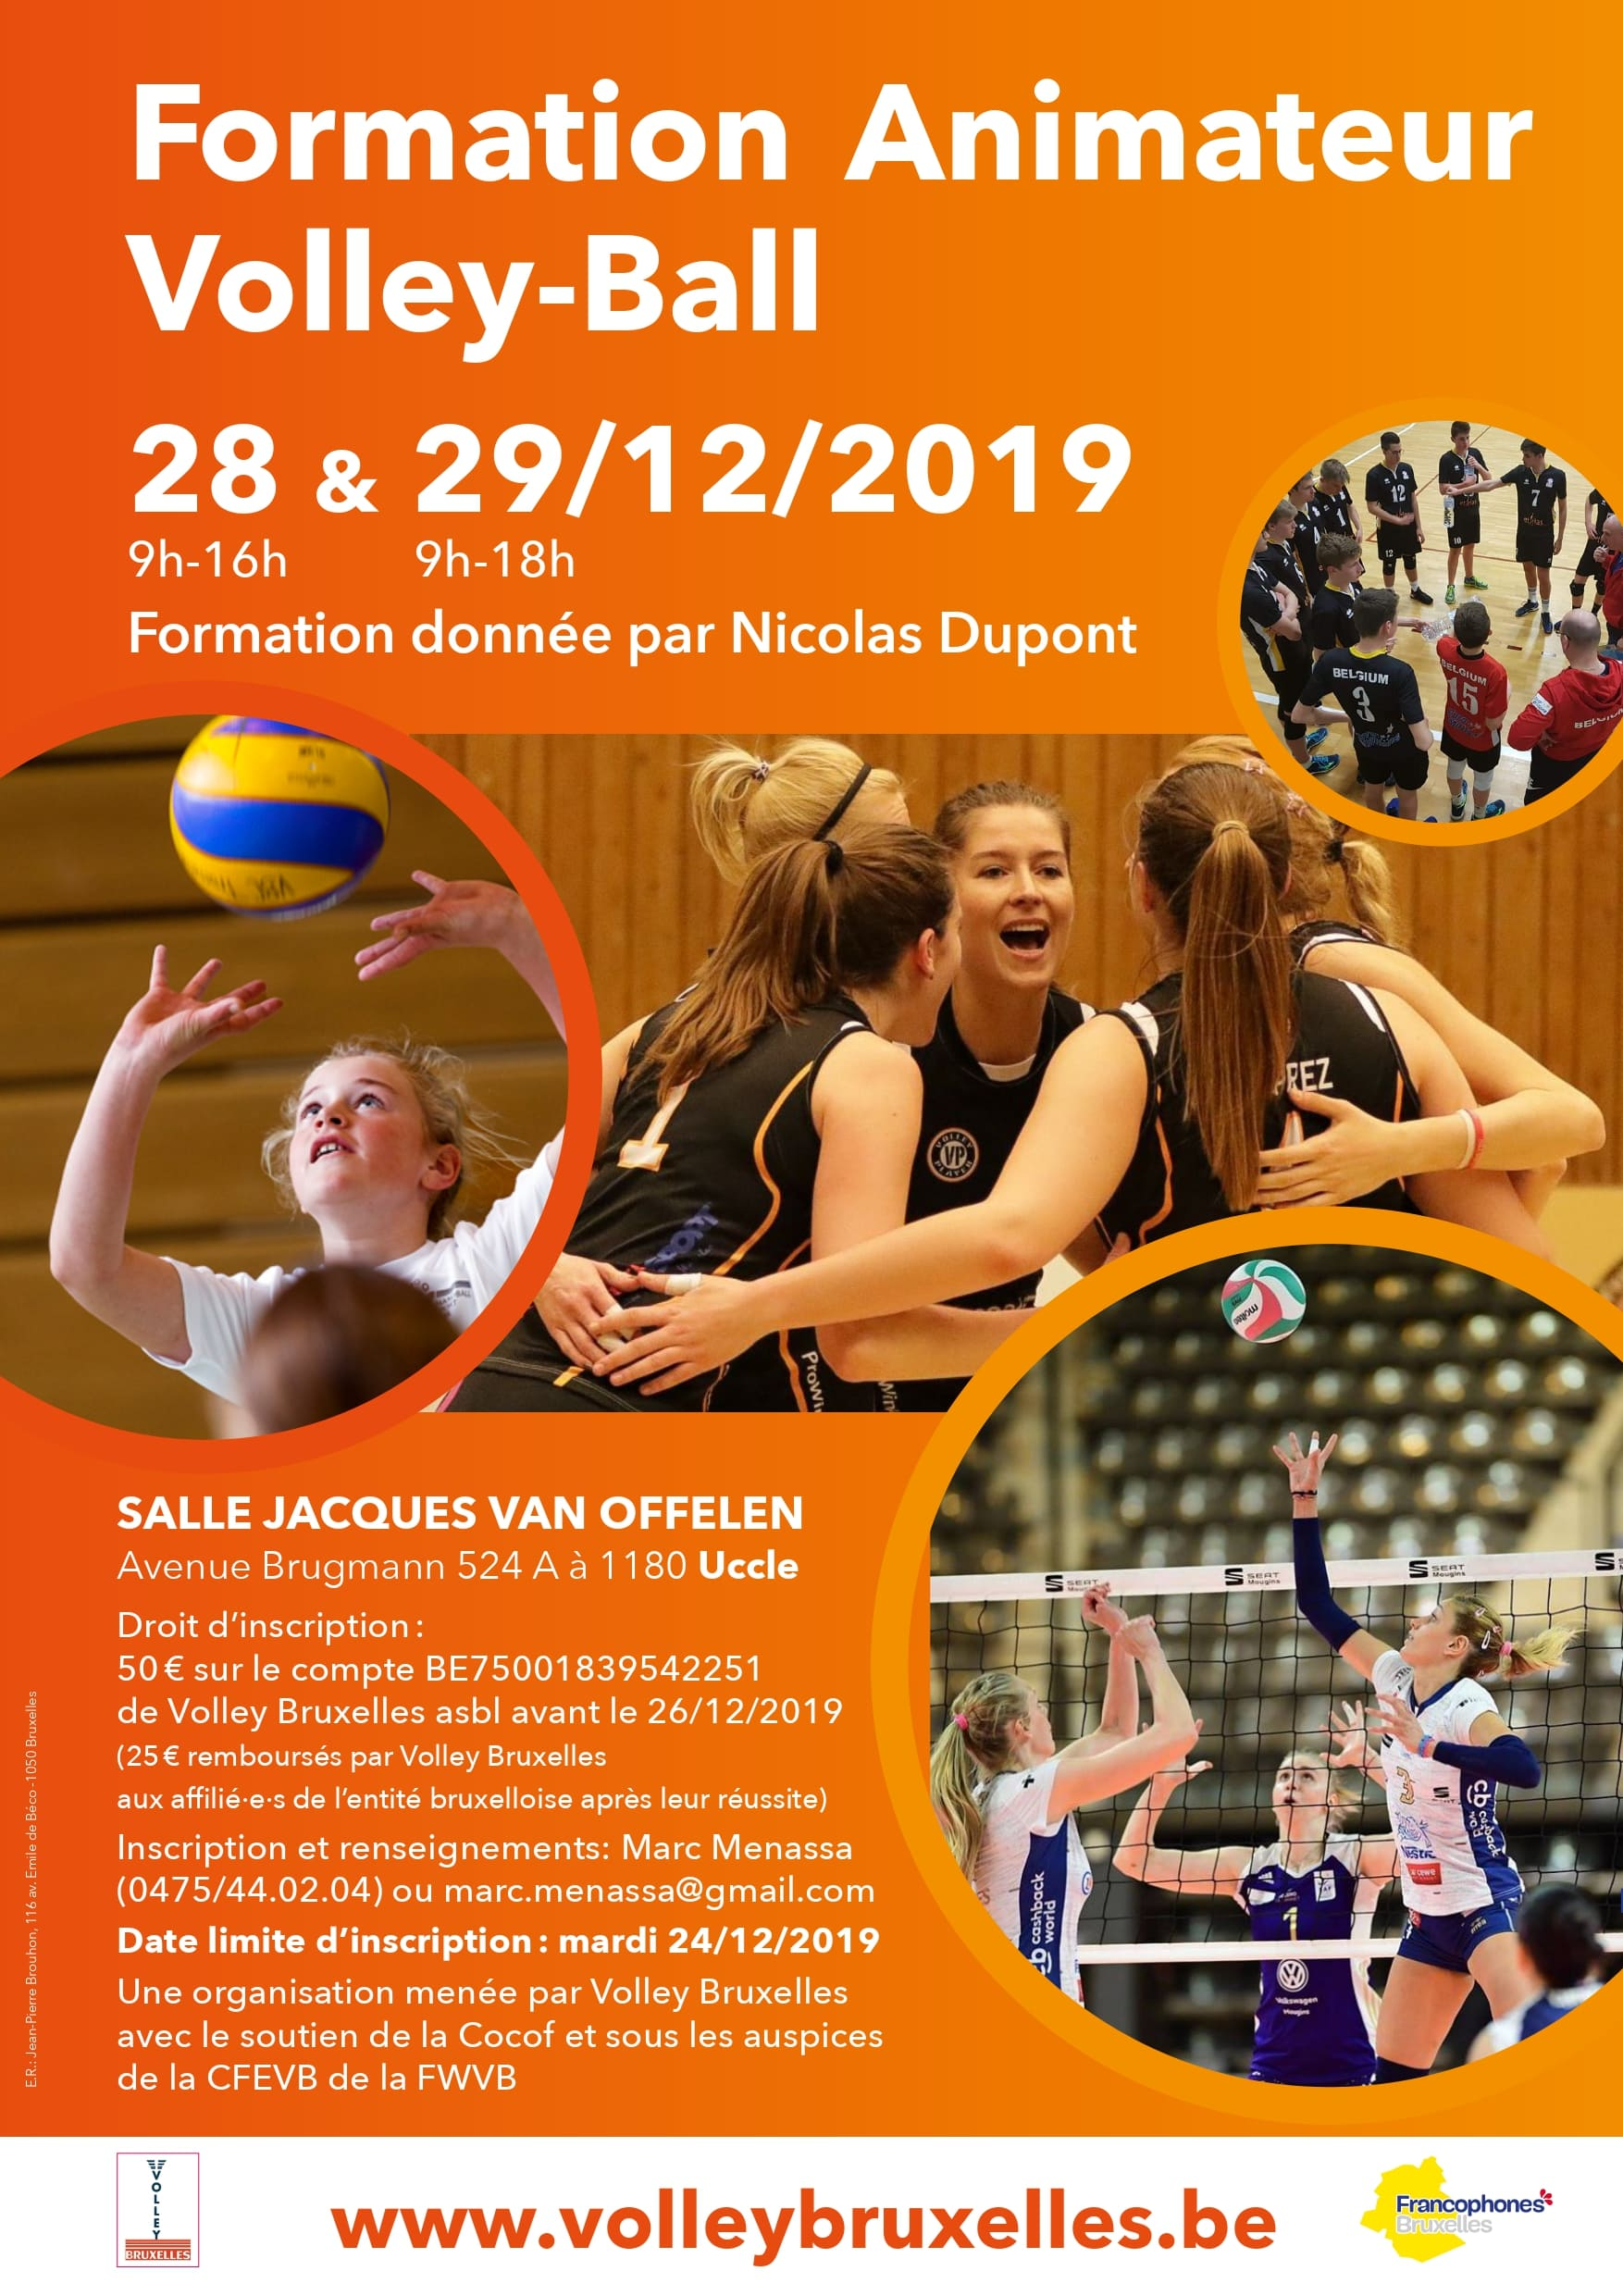 Formation Animateur Volley Ball A3 v2